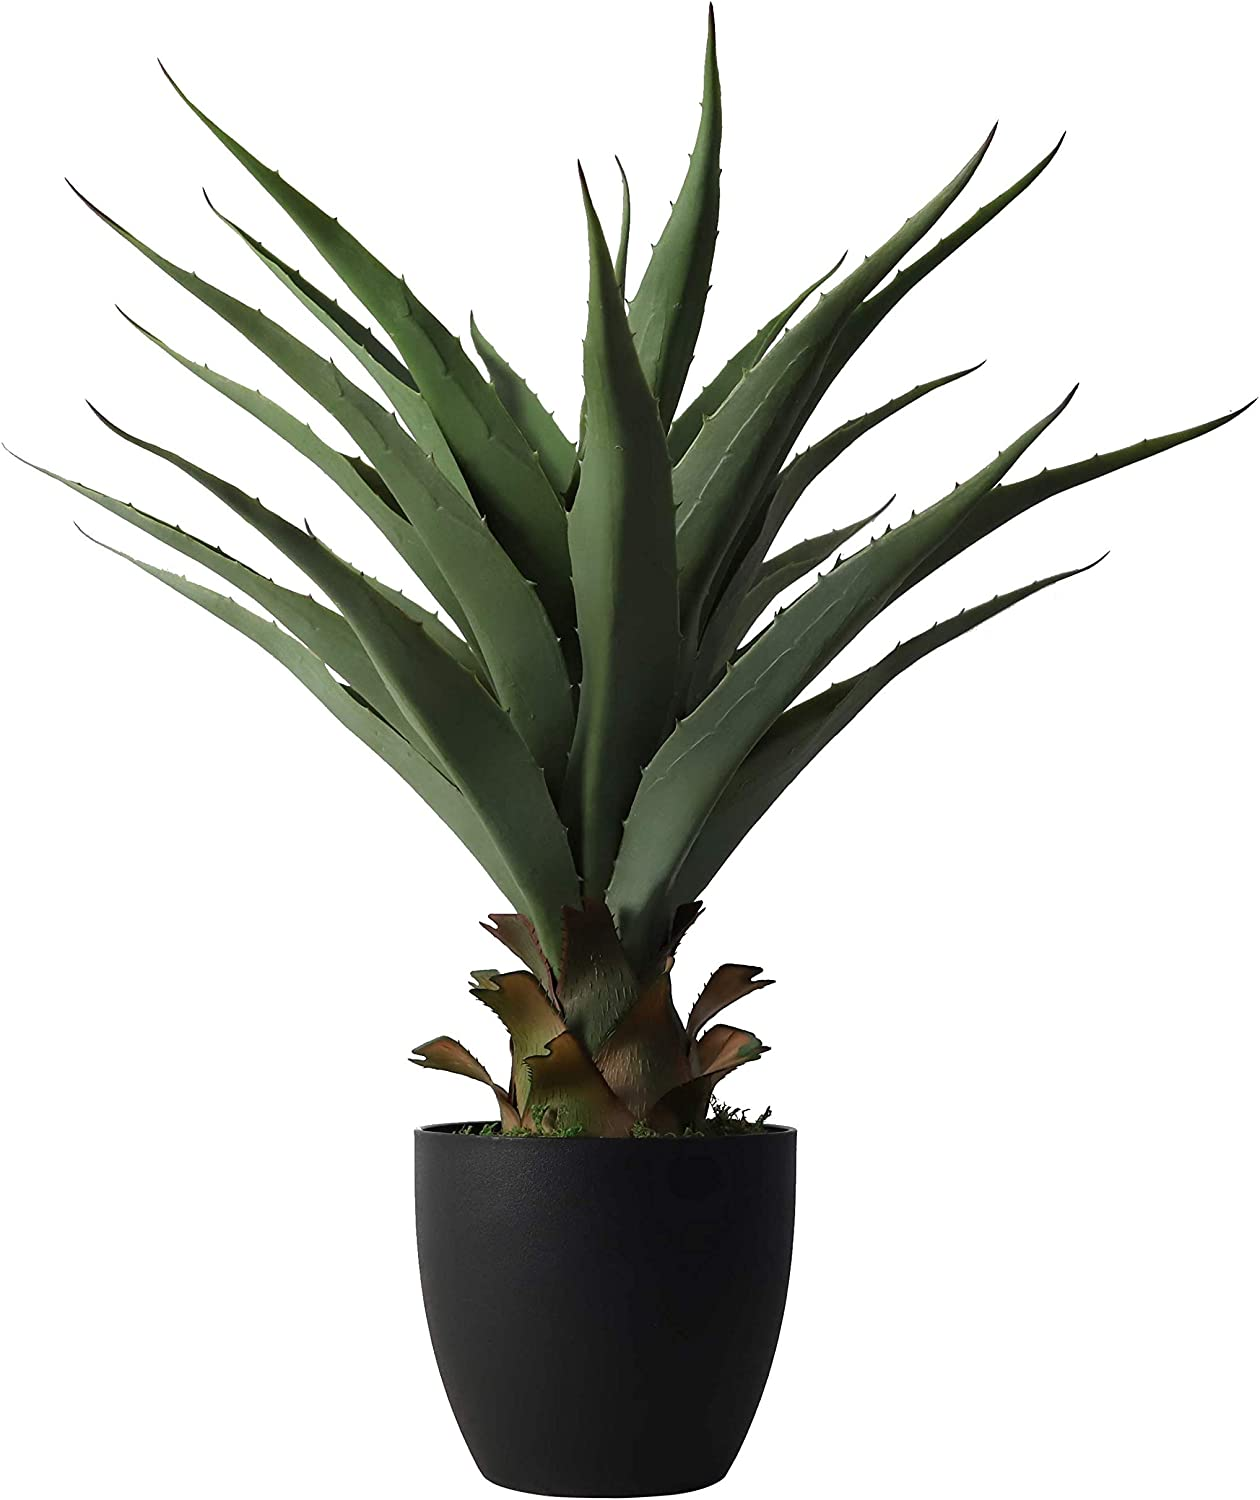 27 Inch Sansevieria Feaux Plants Agave Snake Plant Barbed Artificial Fake Green Plastic Sword Potted Greenery Decoration Office/Garden/Indoor